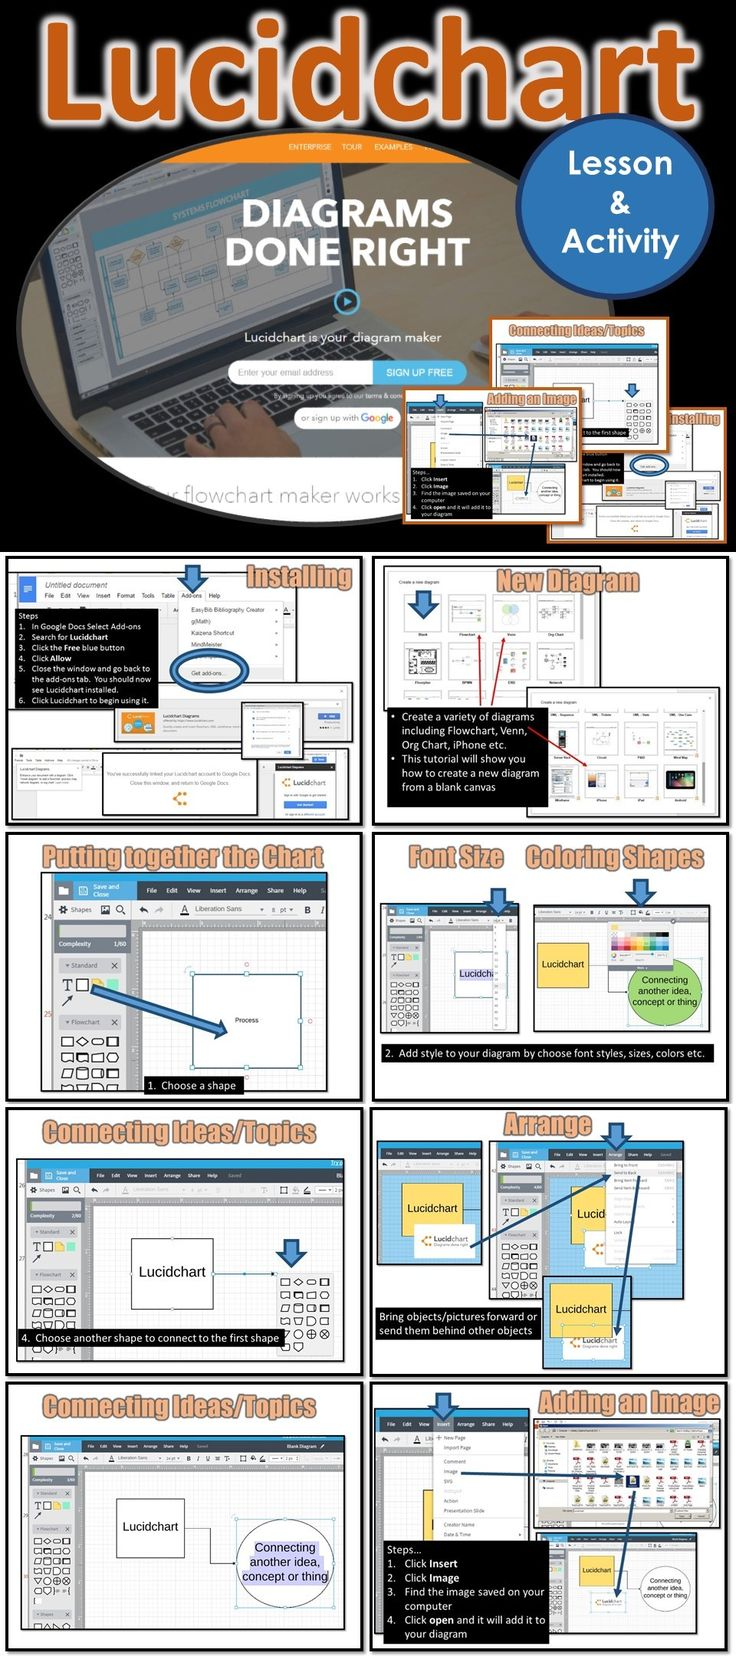 This online diagram application makes it easy to sketch and share professional flowchart diagrams.  Lucidchart is an add-on for Google Drive.